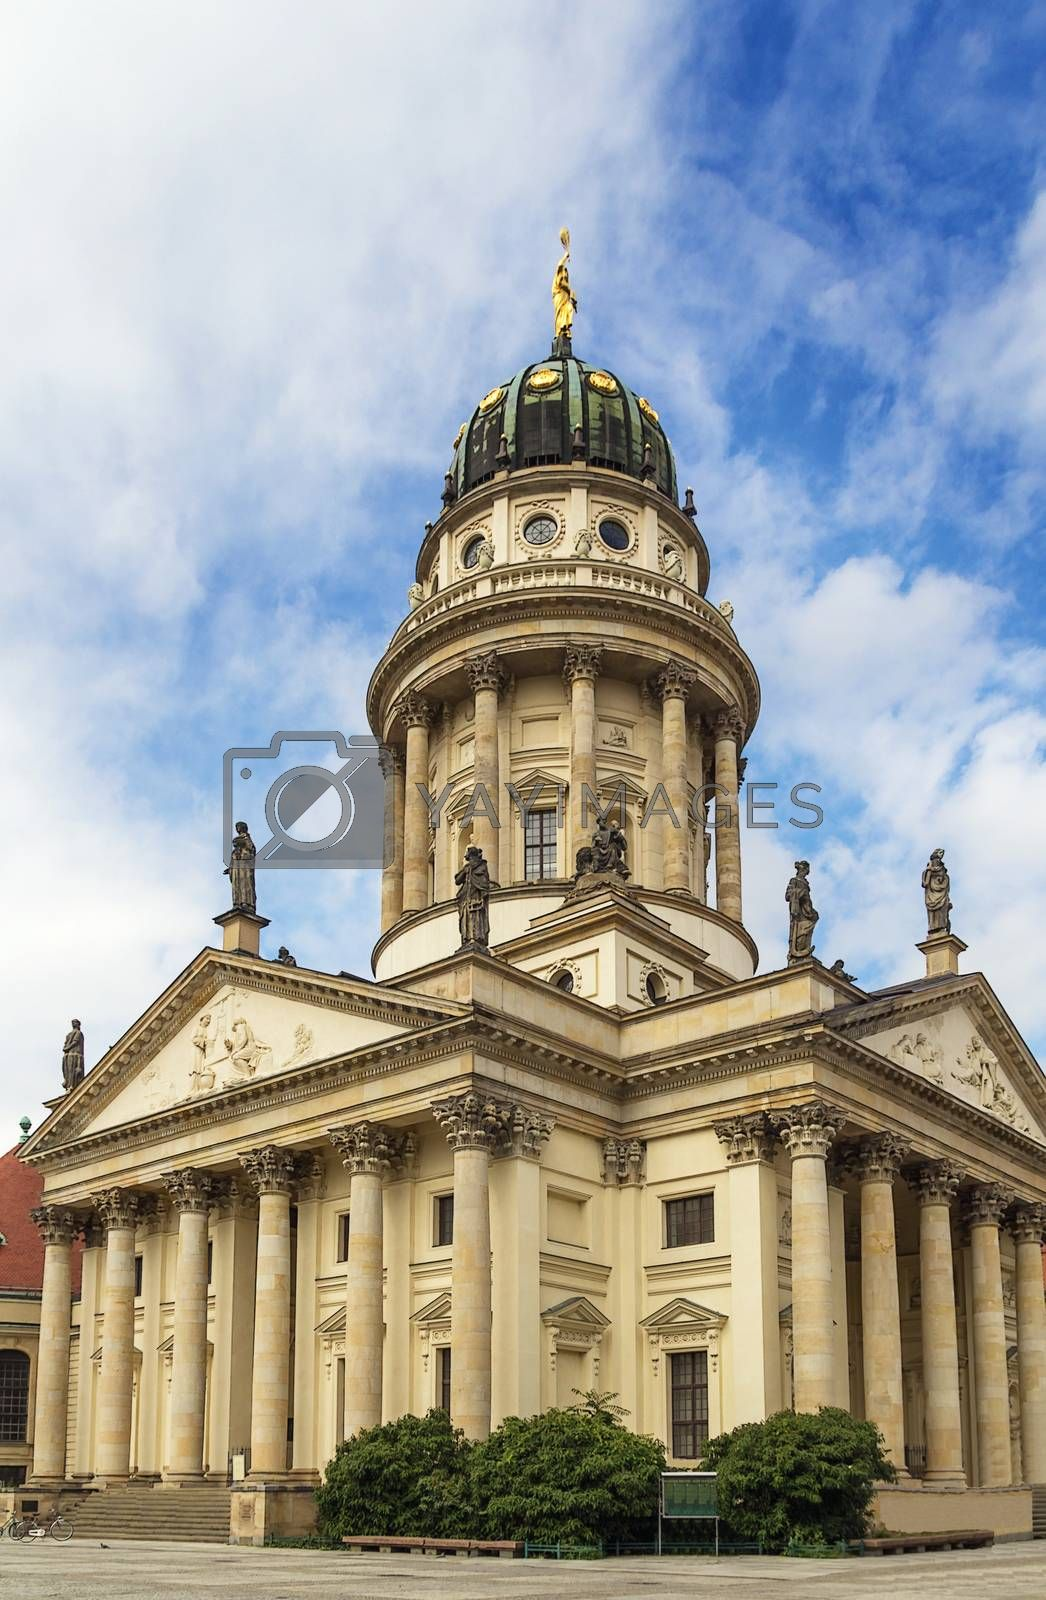 French Cathedral, Berlin by borisb17